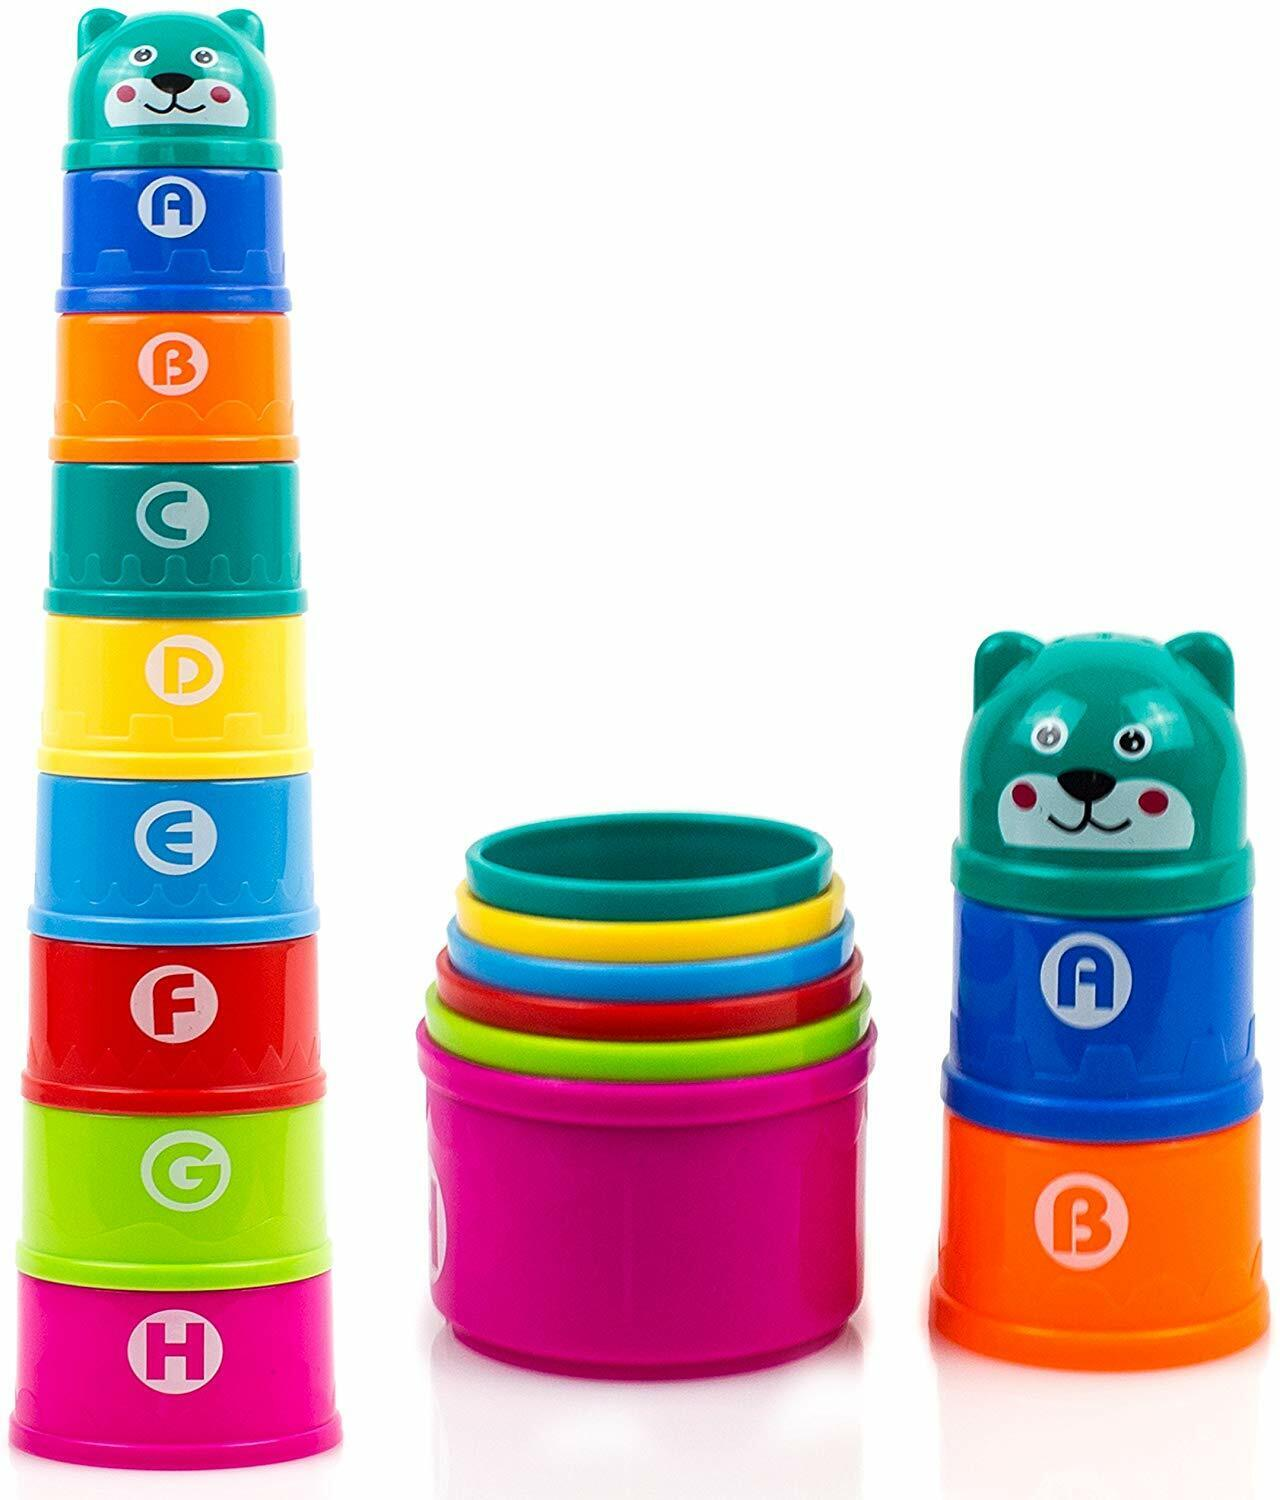 New Stacking Cups with Numbers Letters & Animals Bath Toys for Toddler Kids 8Pcs